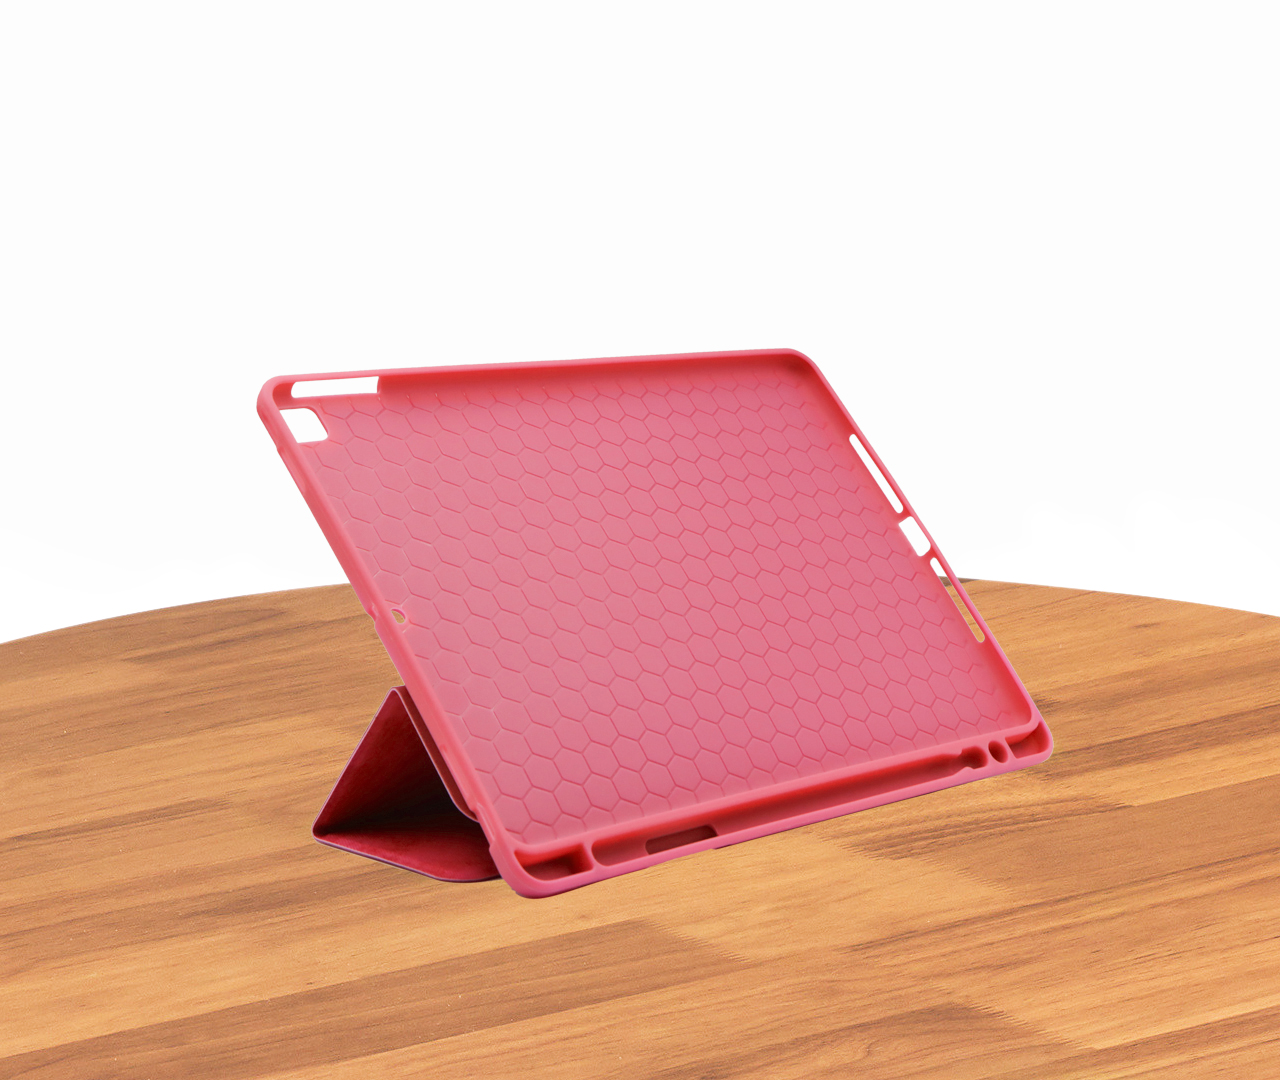 IKAKU Pen Slot Series Flip Cover For Ipad Air 3 / A2123 / A2152 / A2153 / A2154 (Red)